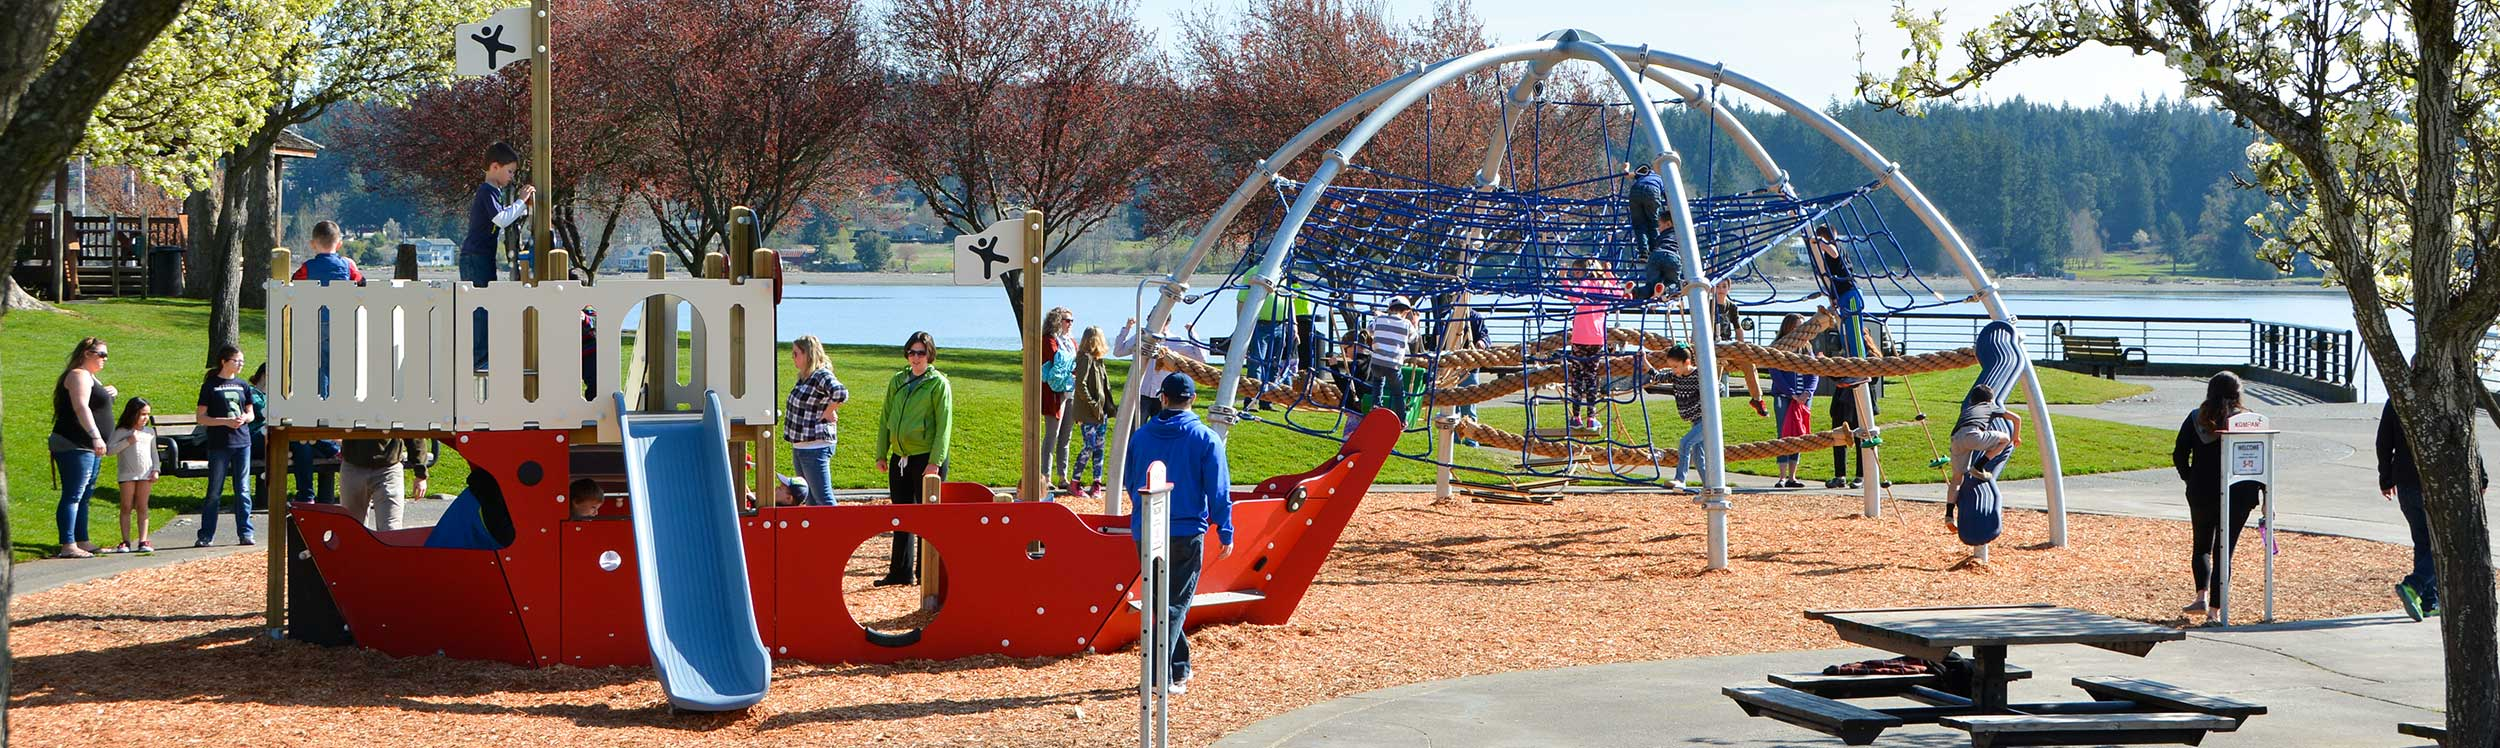 Family park and playground equipment